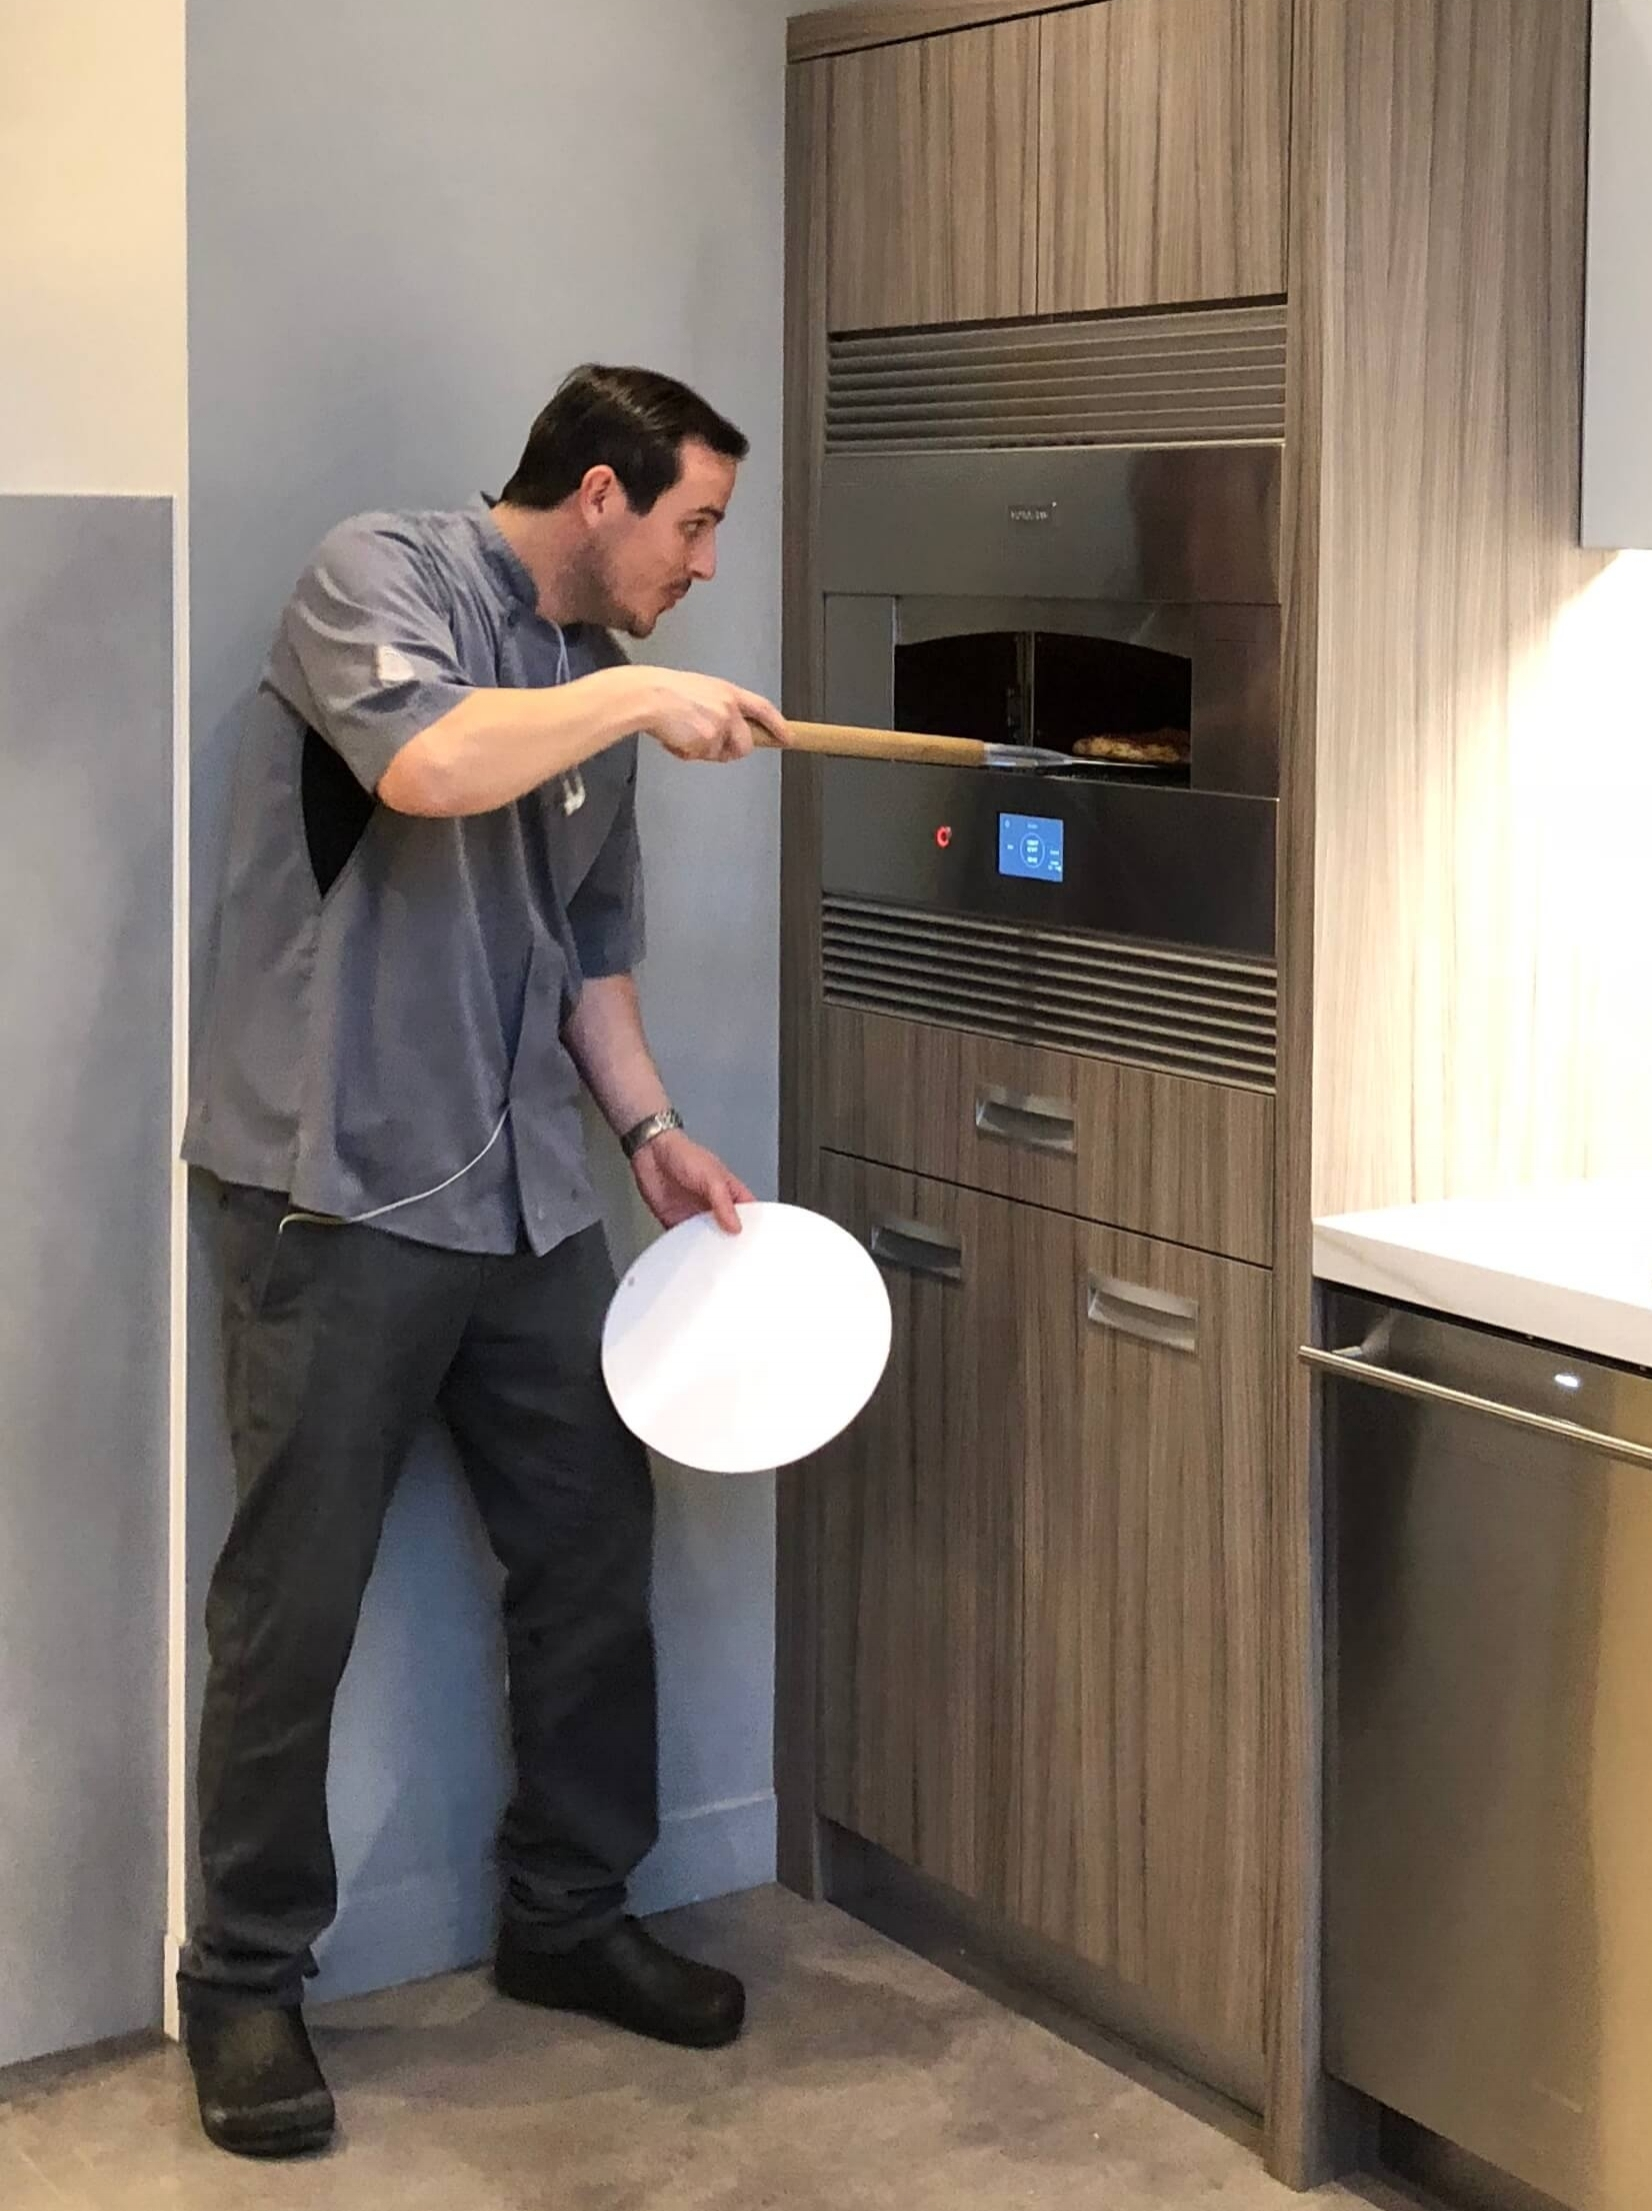 Cooking with a chef at Monogram Appliances showroom #pizzaoven #monogramappliances #indoorpizzaoven